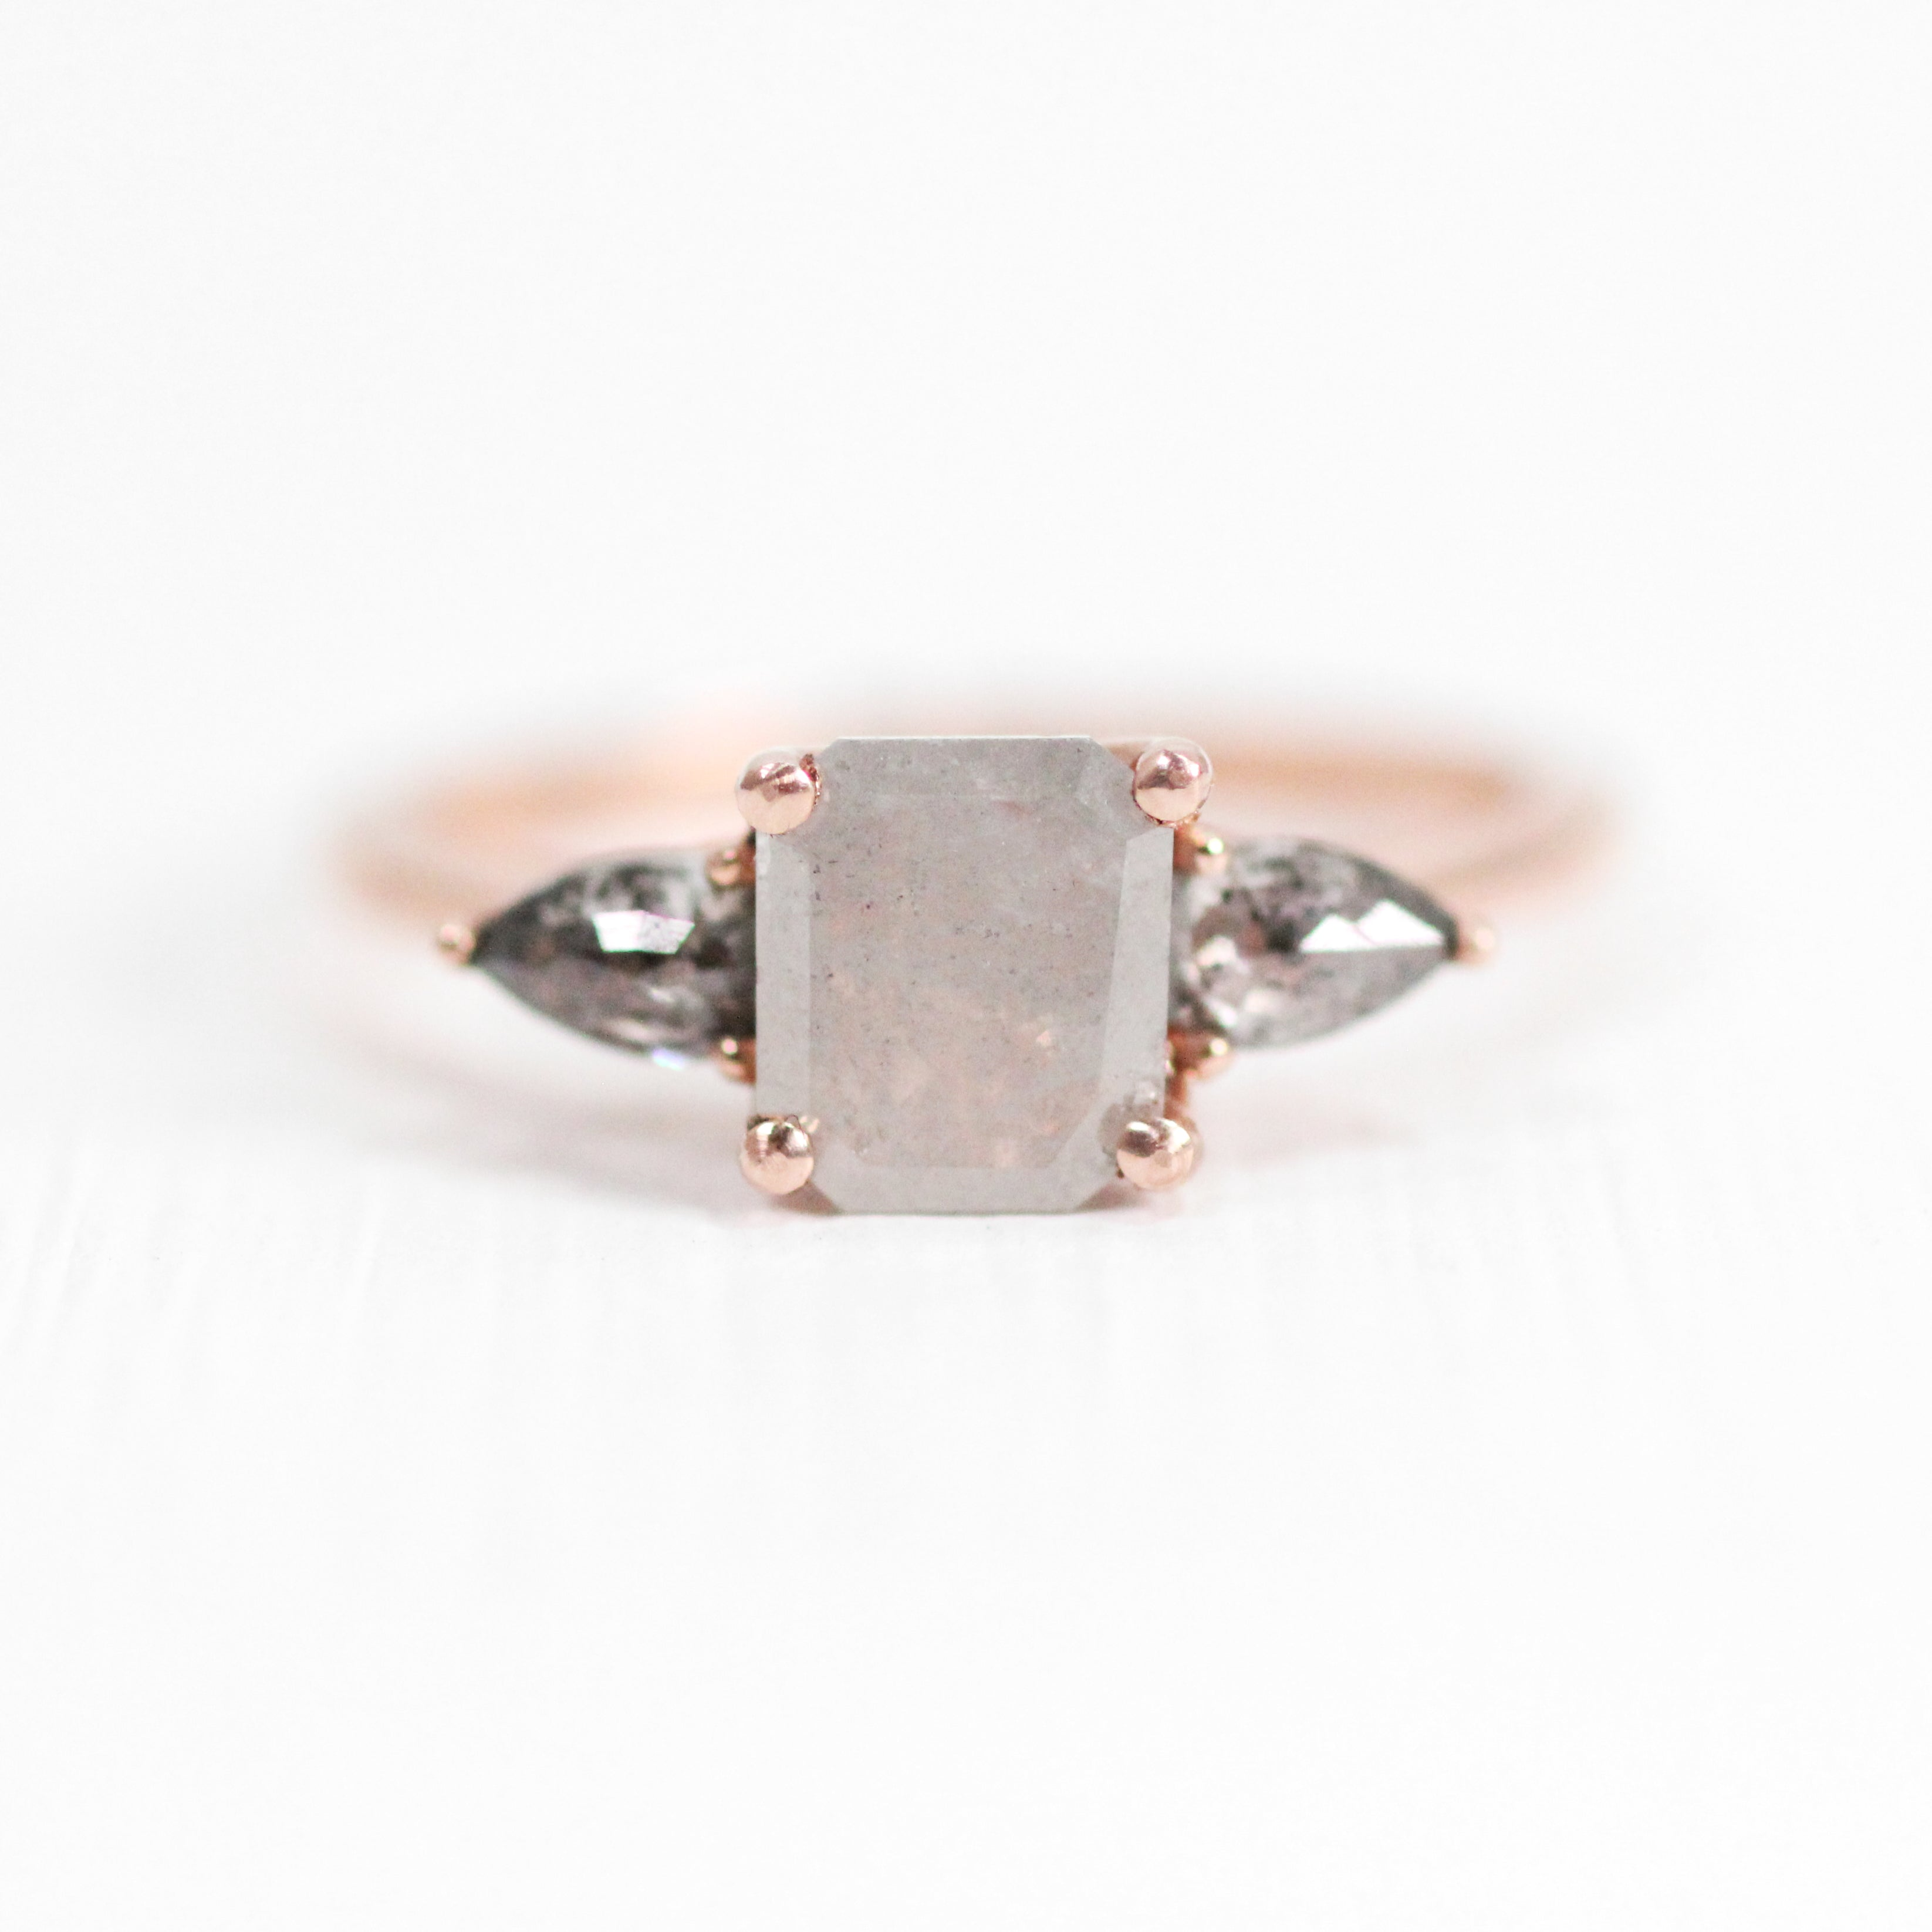 Oleander Ring with Misty Light Gray Diamond and accented gray diamonds in 14k Rose Gold - Ready to Size and Ship